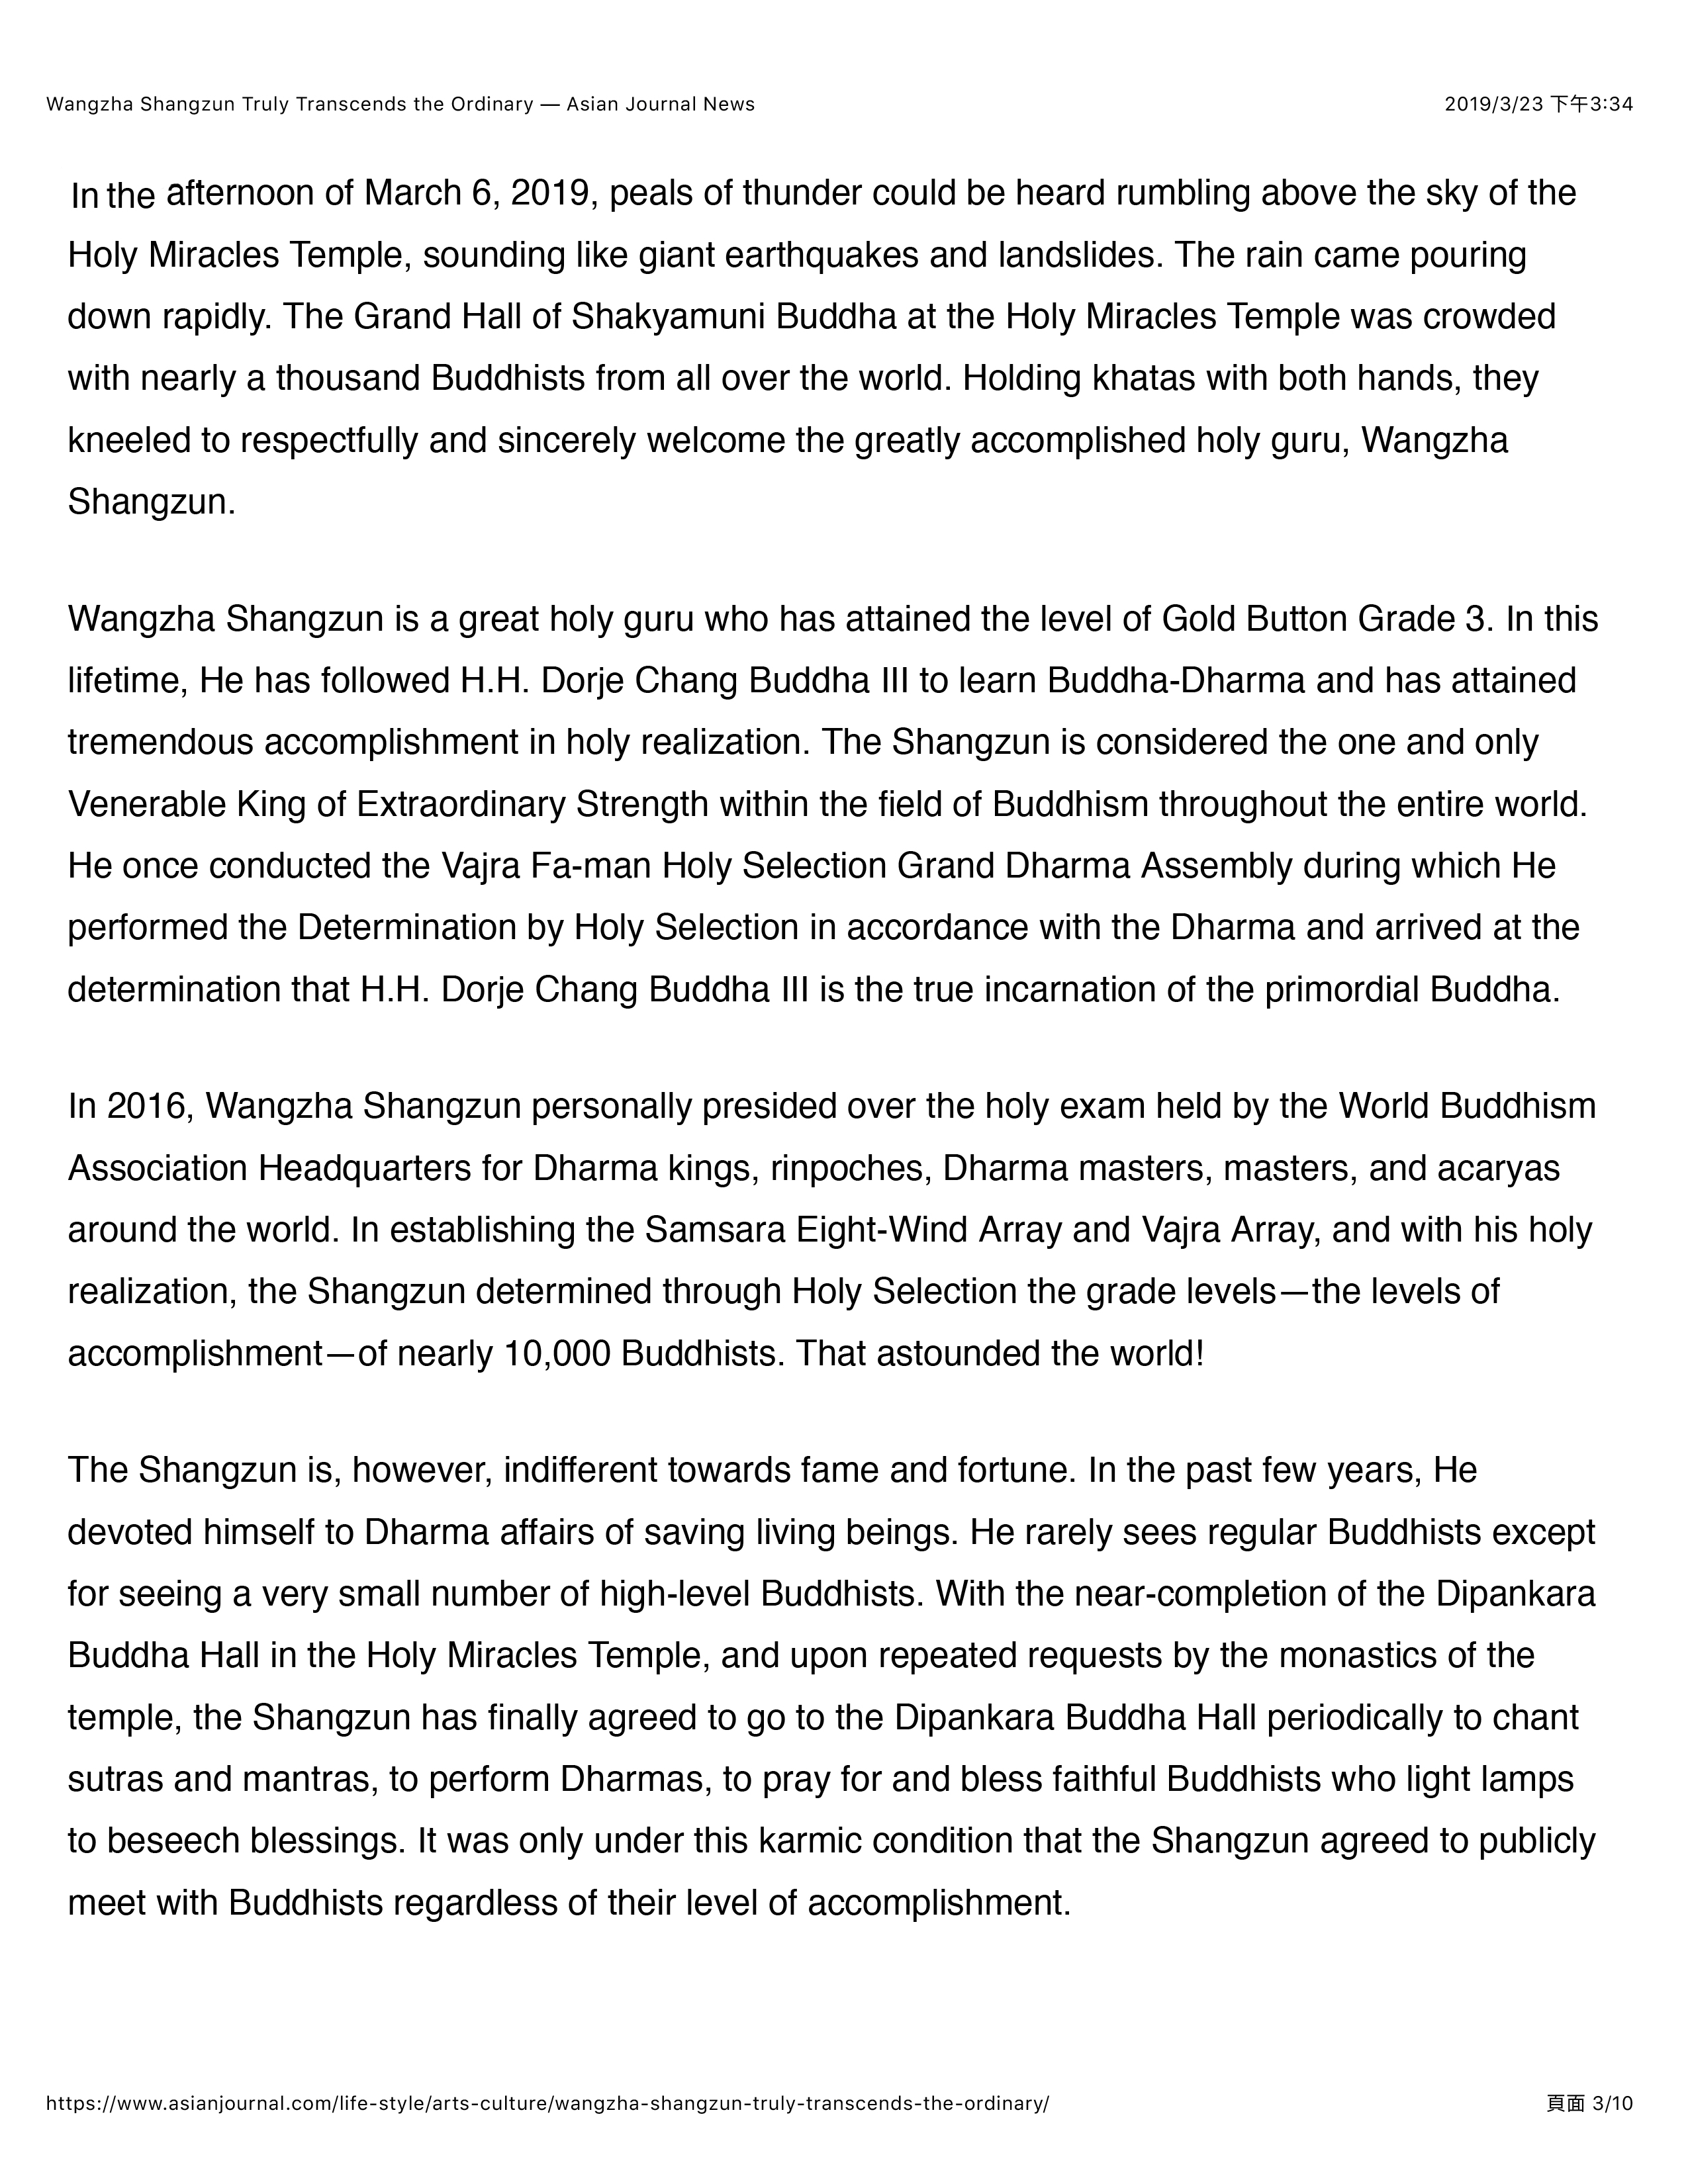 Asian Journal Wangzha Shangzun Truly Transcends the Ordinary-2